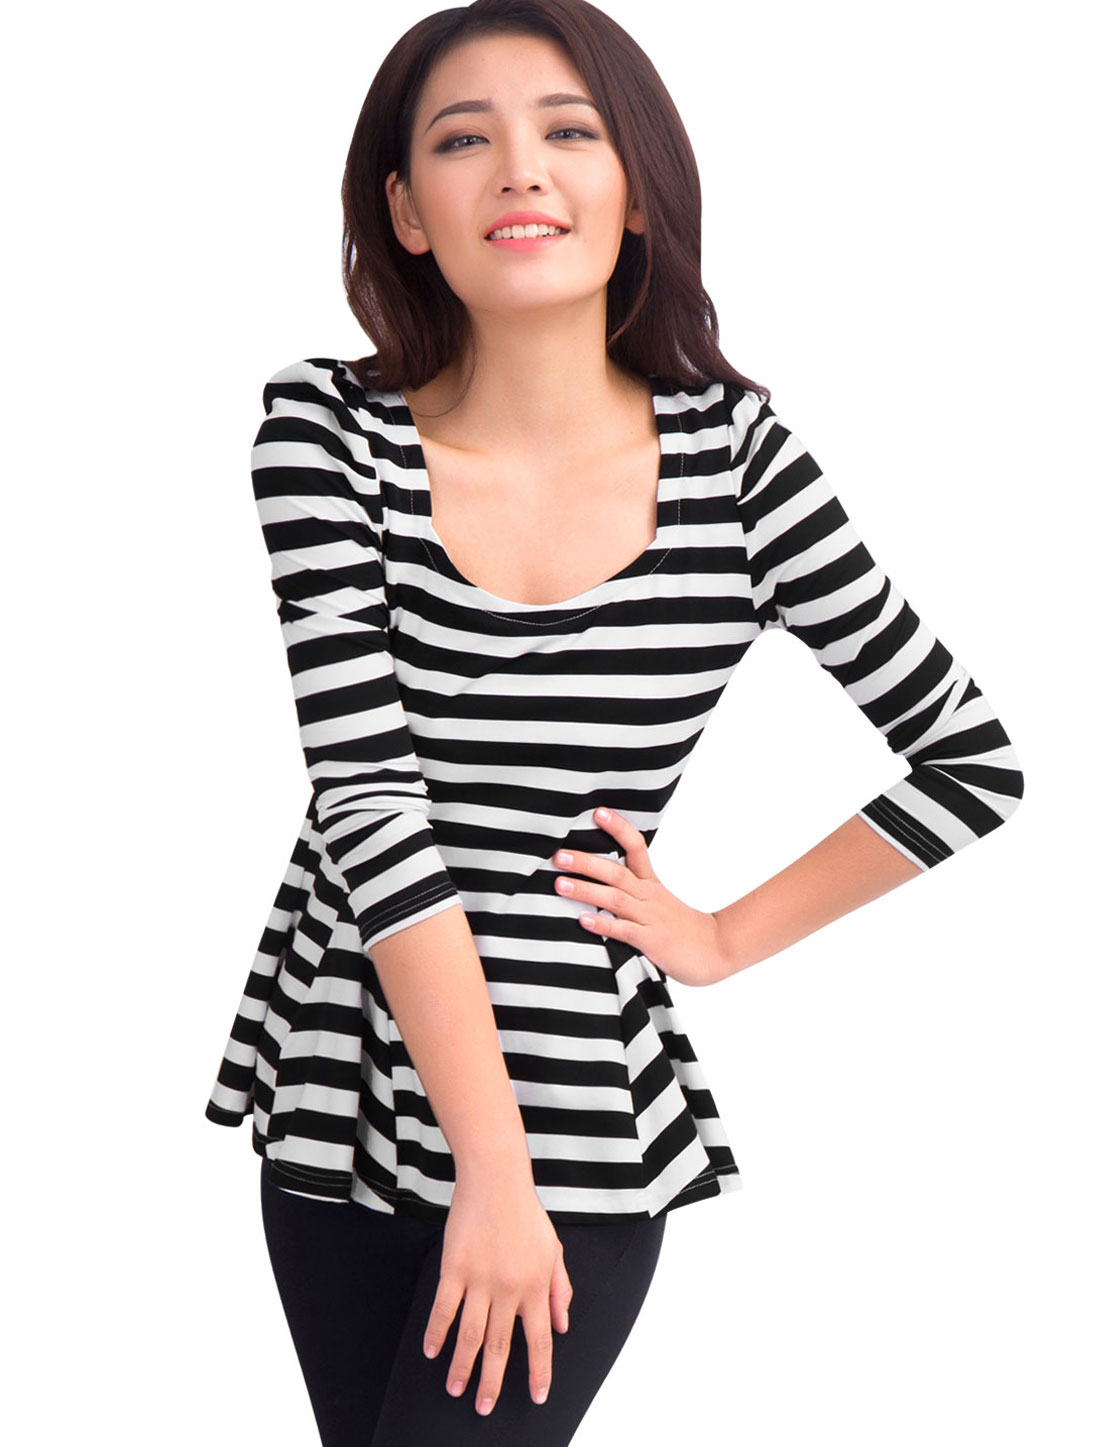 Lady Stretchy Scoop Neck Long Sleeves Black White Stripes Tunic S